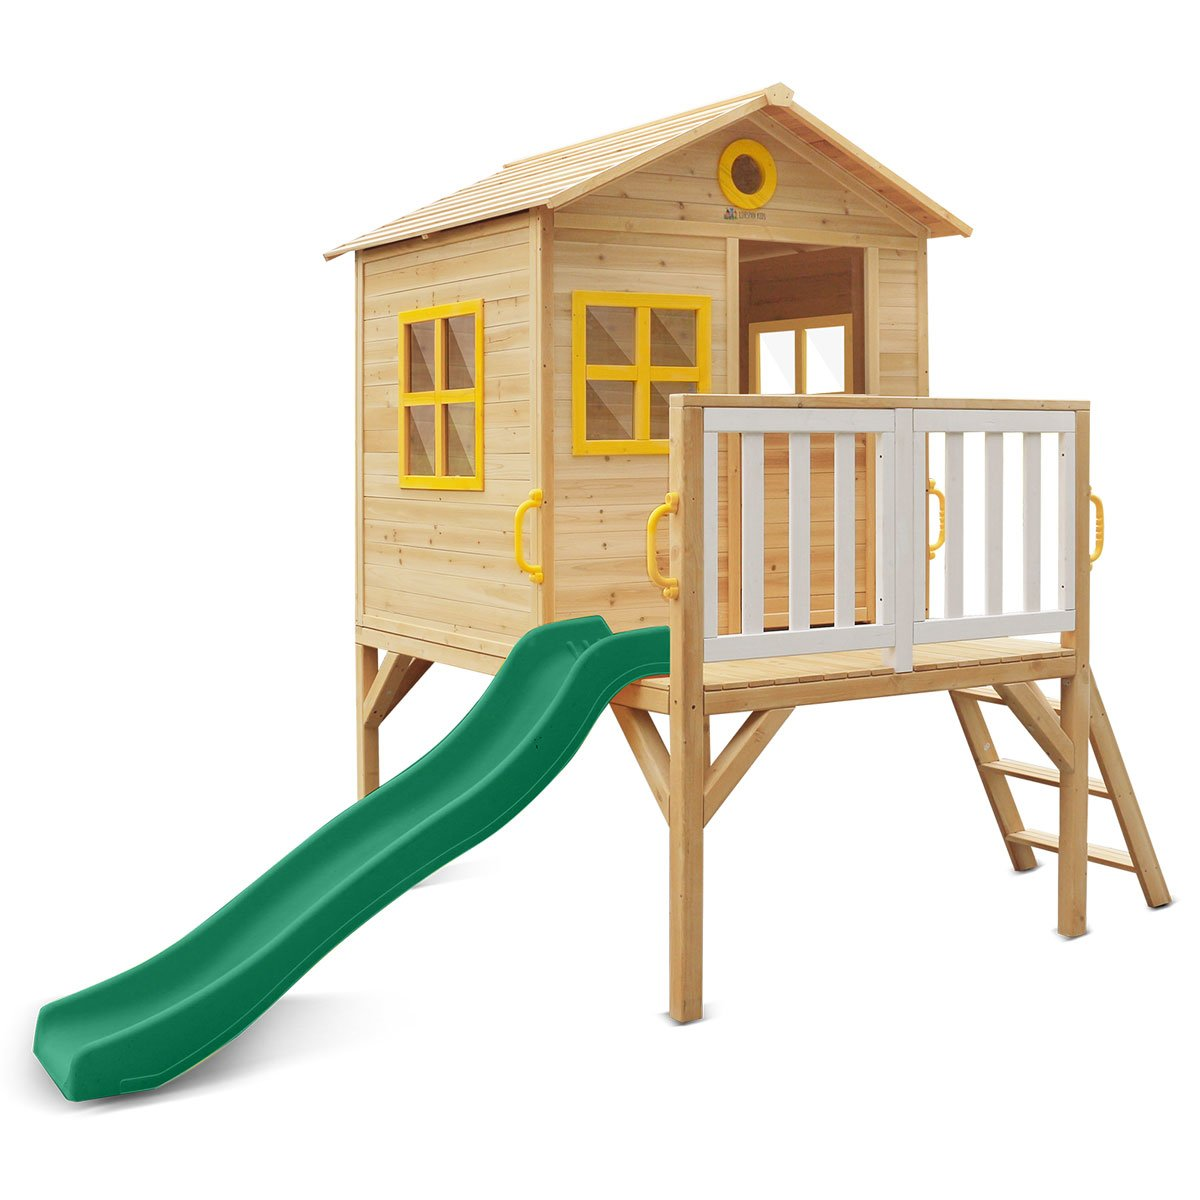 Lifespan Kids Archie Cubby House with Green Slide